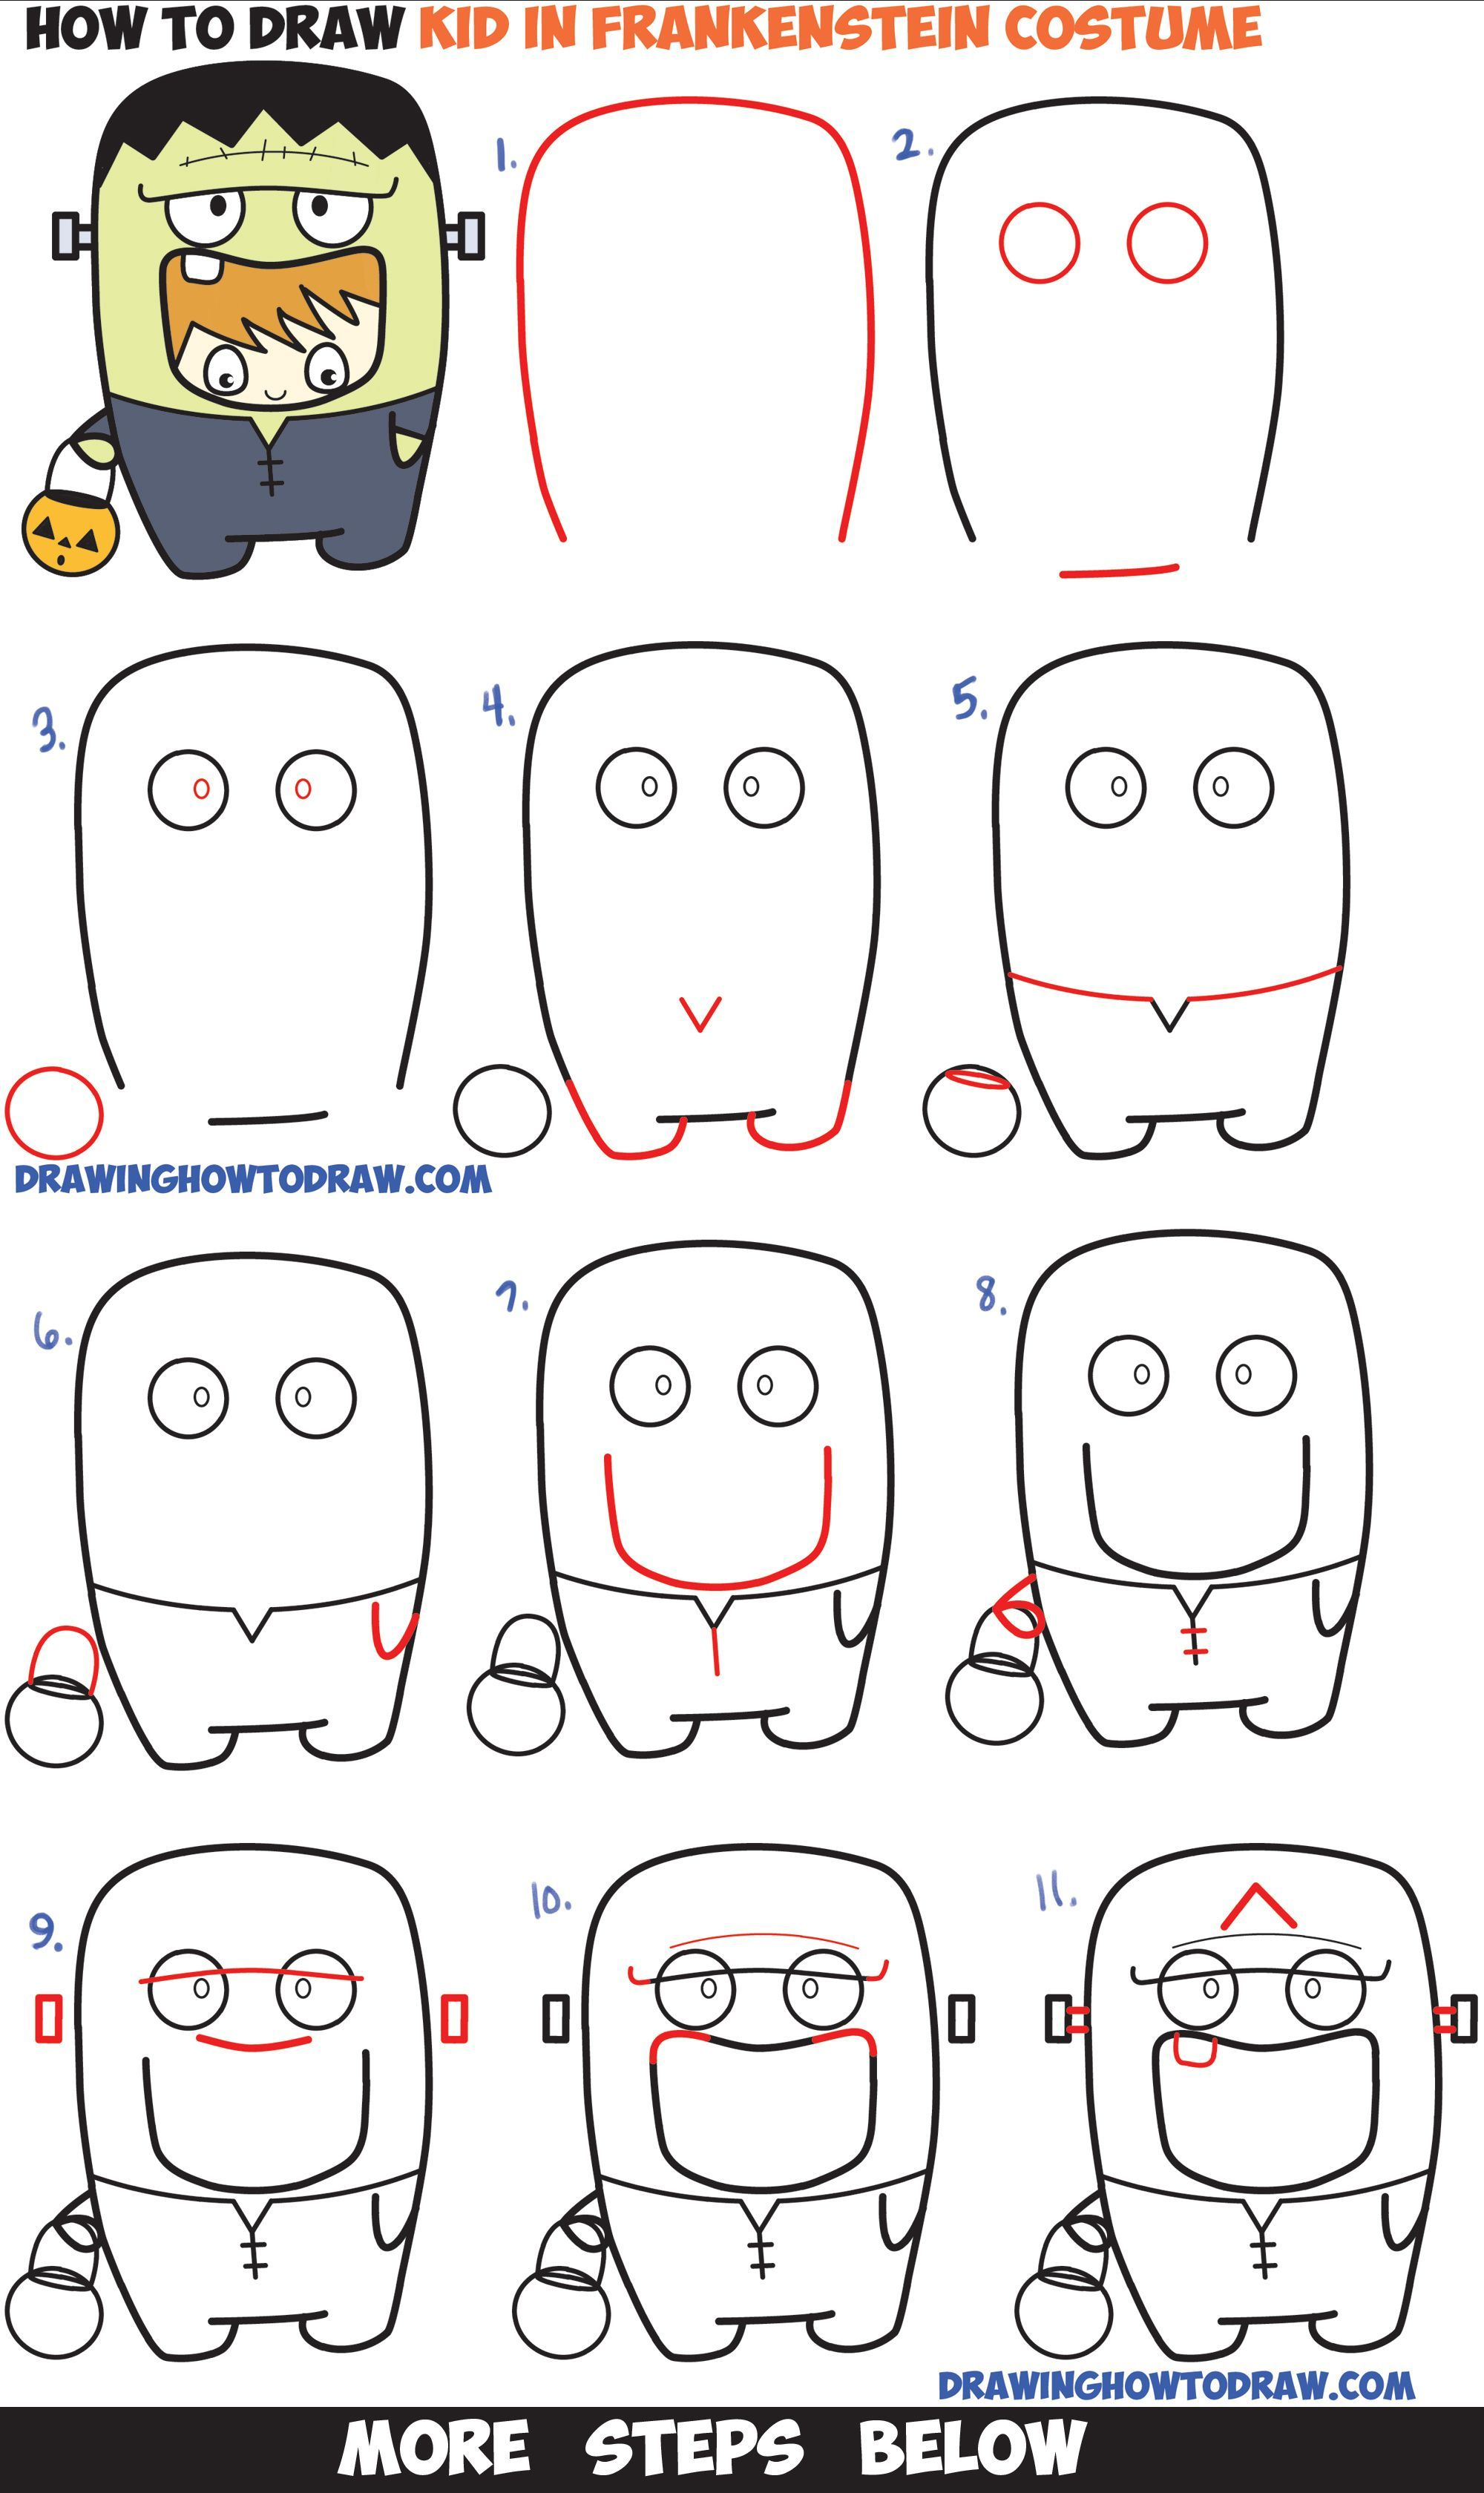 How To Draw A Kid In A Halloween Frankenstein Costume Cute Kawaii